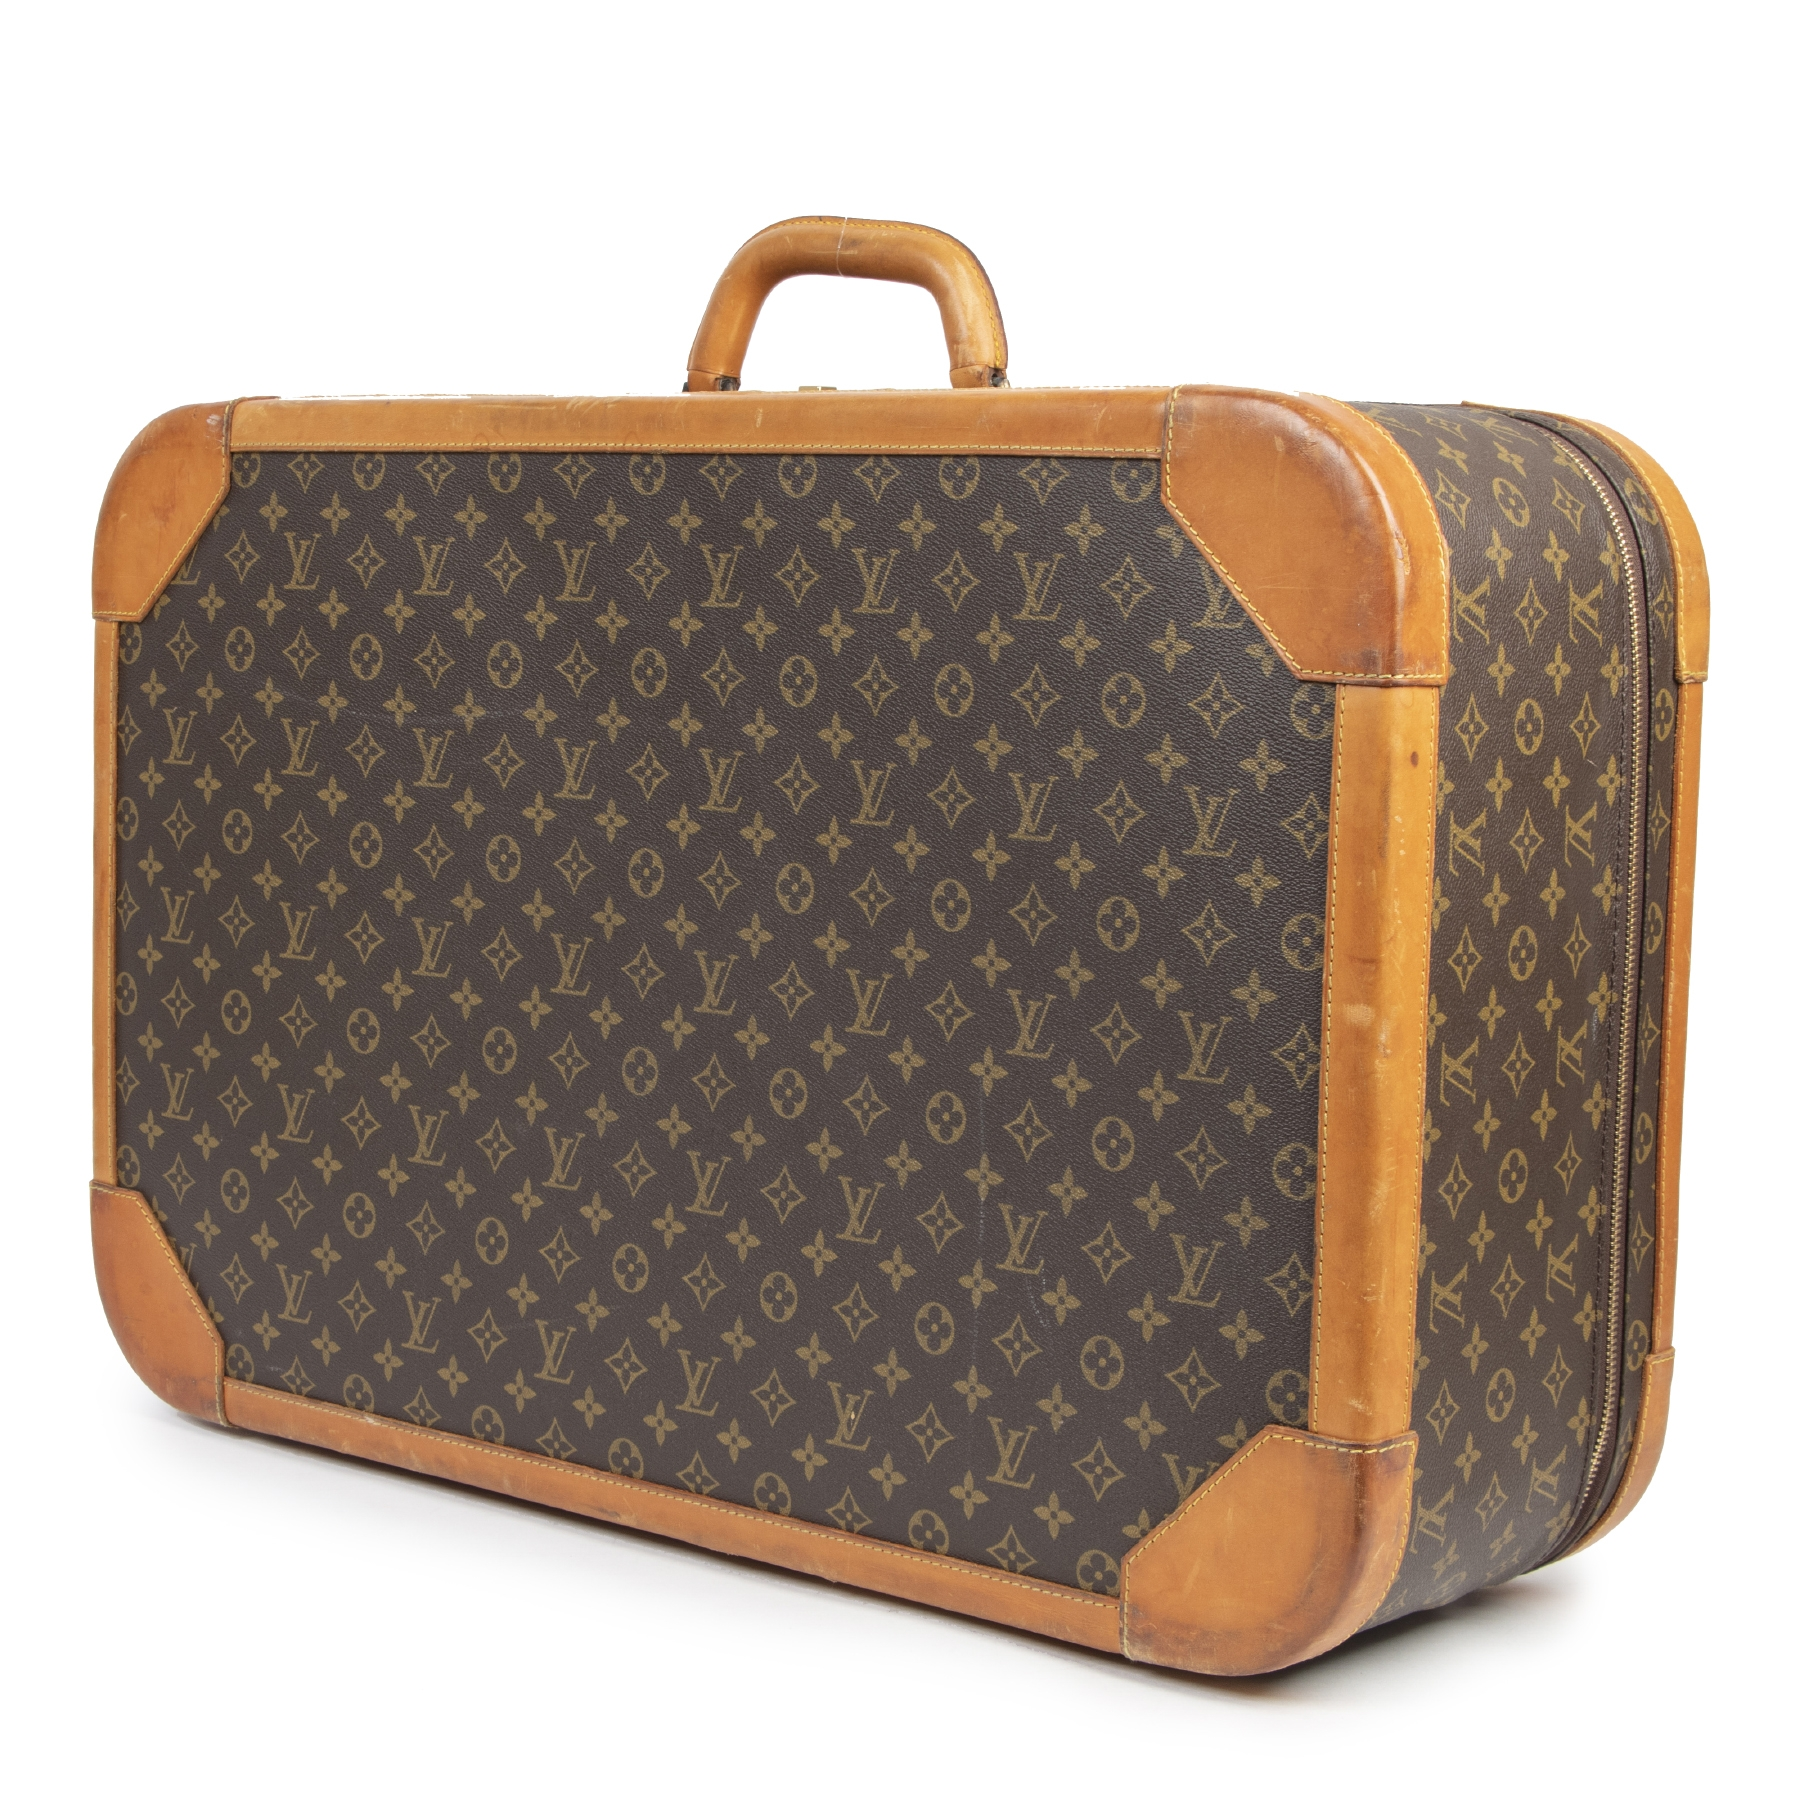 Authentieke tweedehands vintage Louis Vuitton Monogram Stratos 70 koop online webshop LabelLOV